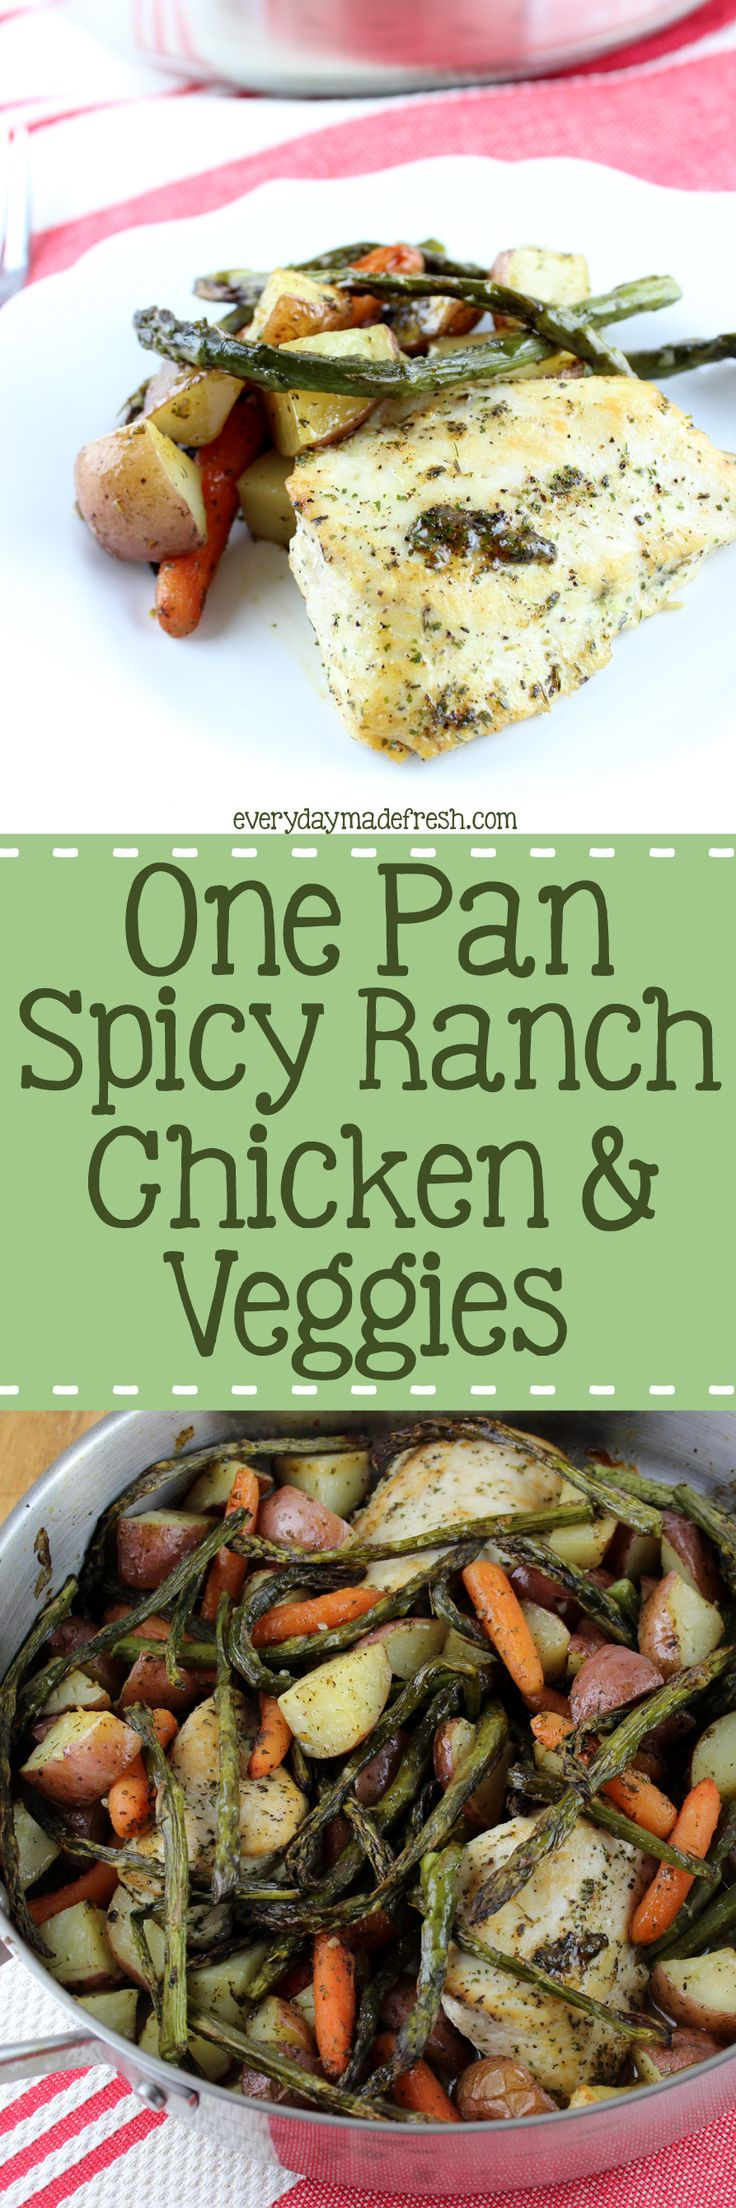 In a perfect world there are no dishes to clean up after dinner. Unfortunately, we don't live in a perfect world; which is why this One Pan Spicy Ranch Chicken & Veggies is perfect! Less to clean up!| Everydaymadefresh.com http://www.everydaymadefresh.com/one-pan-spicy-ranch-chicken-veggies/